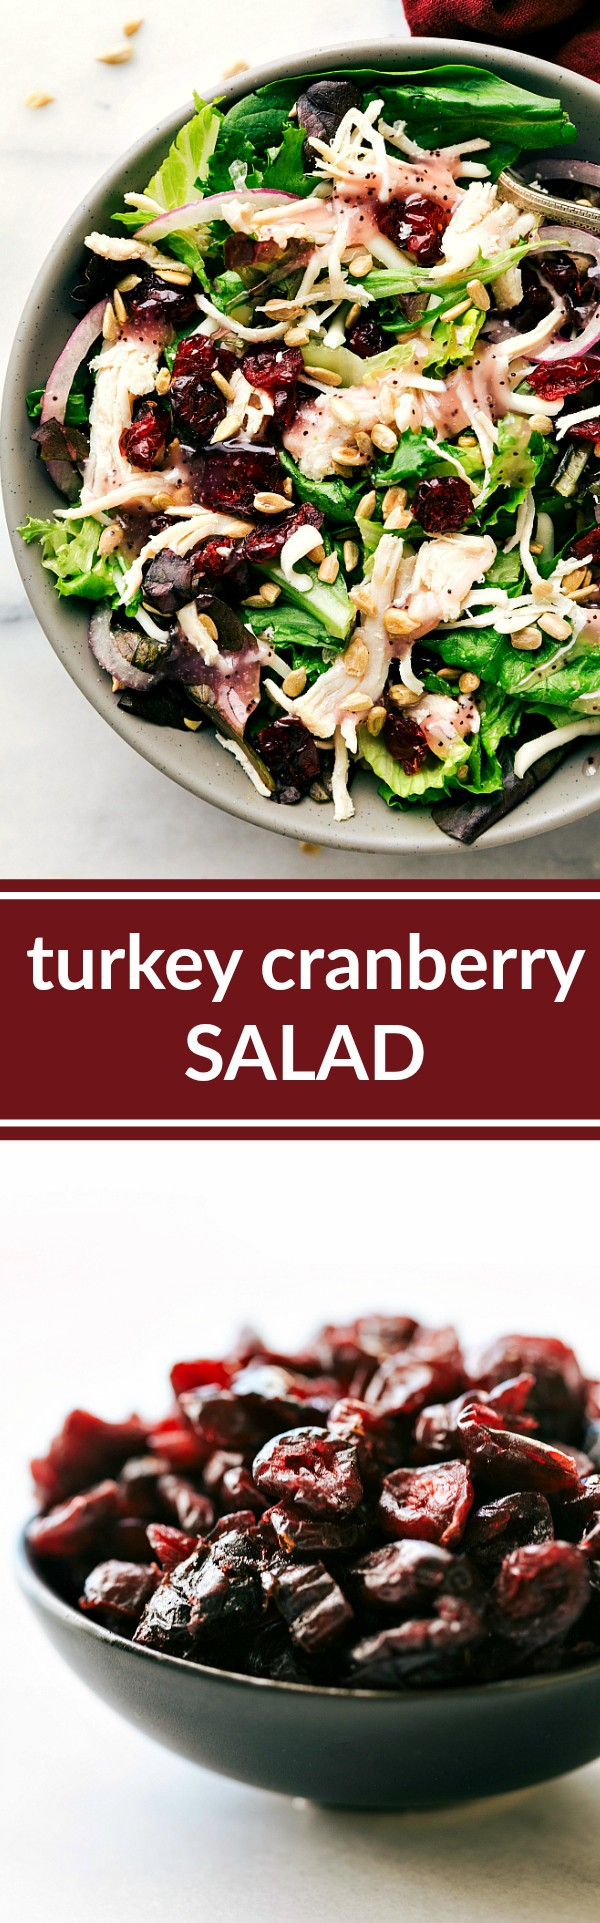 Get the recipe Turkey Cranberry Salad @recipes_to_go